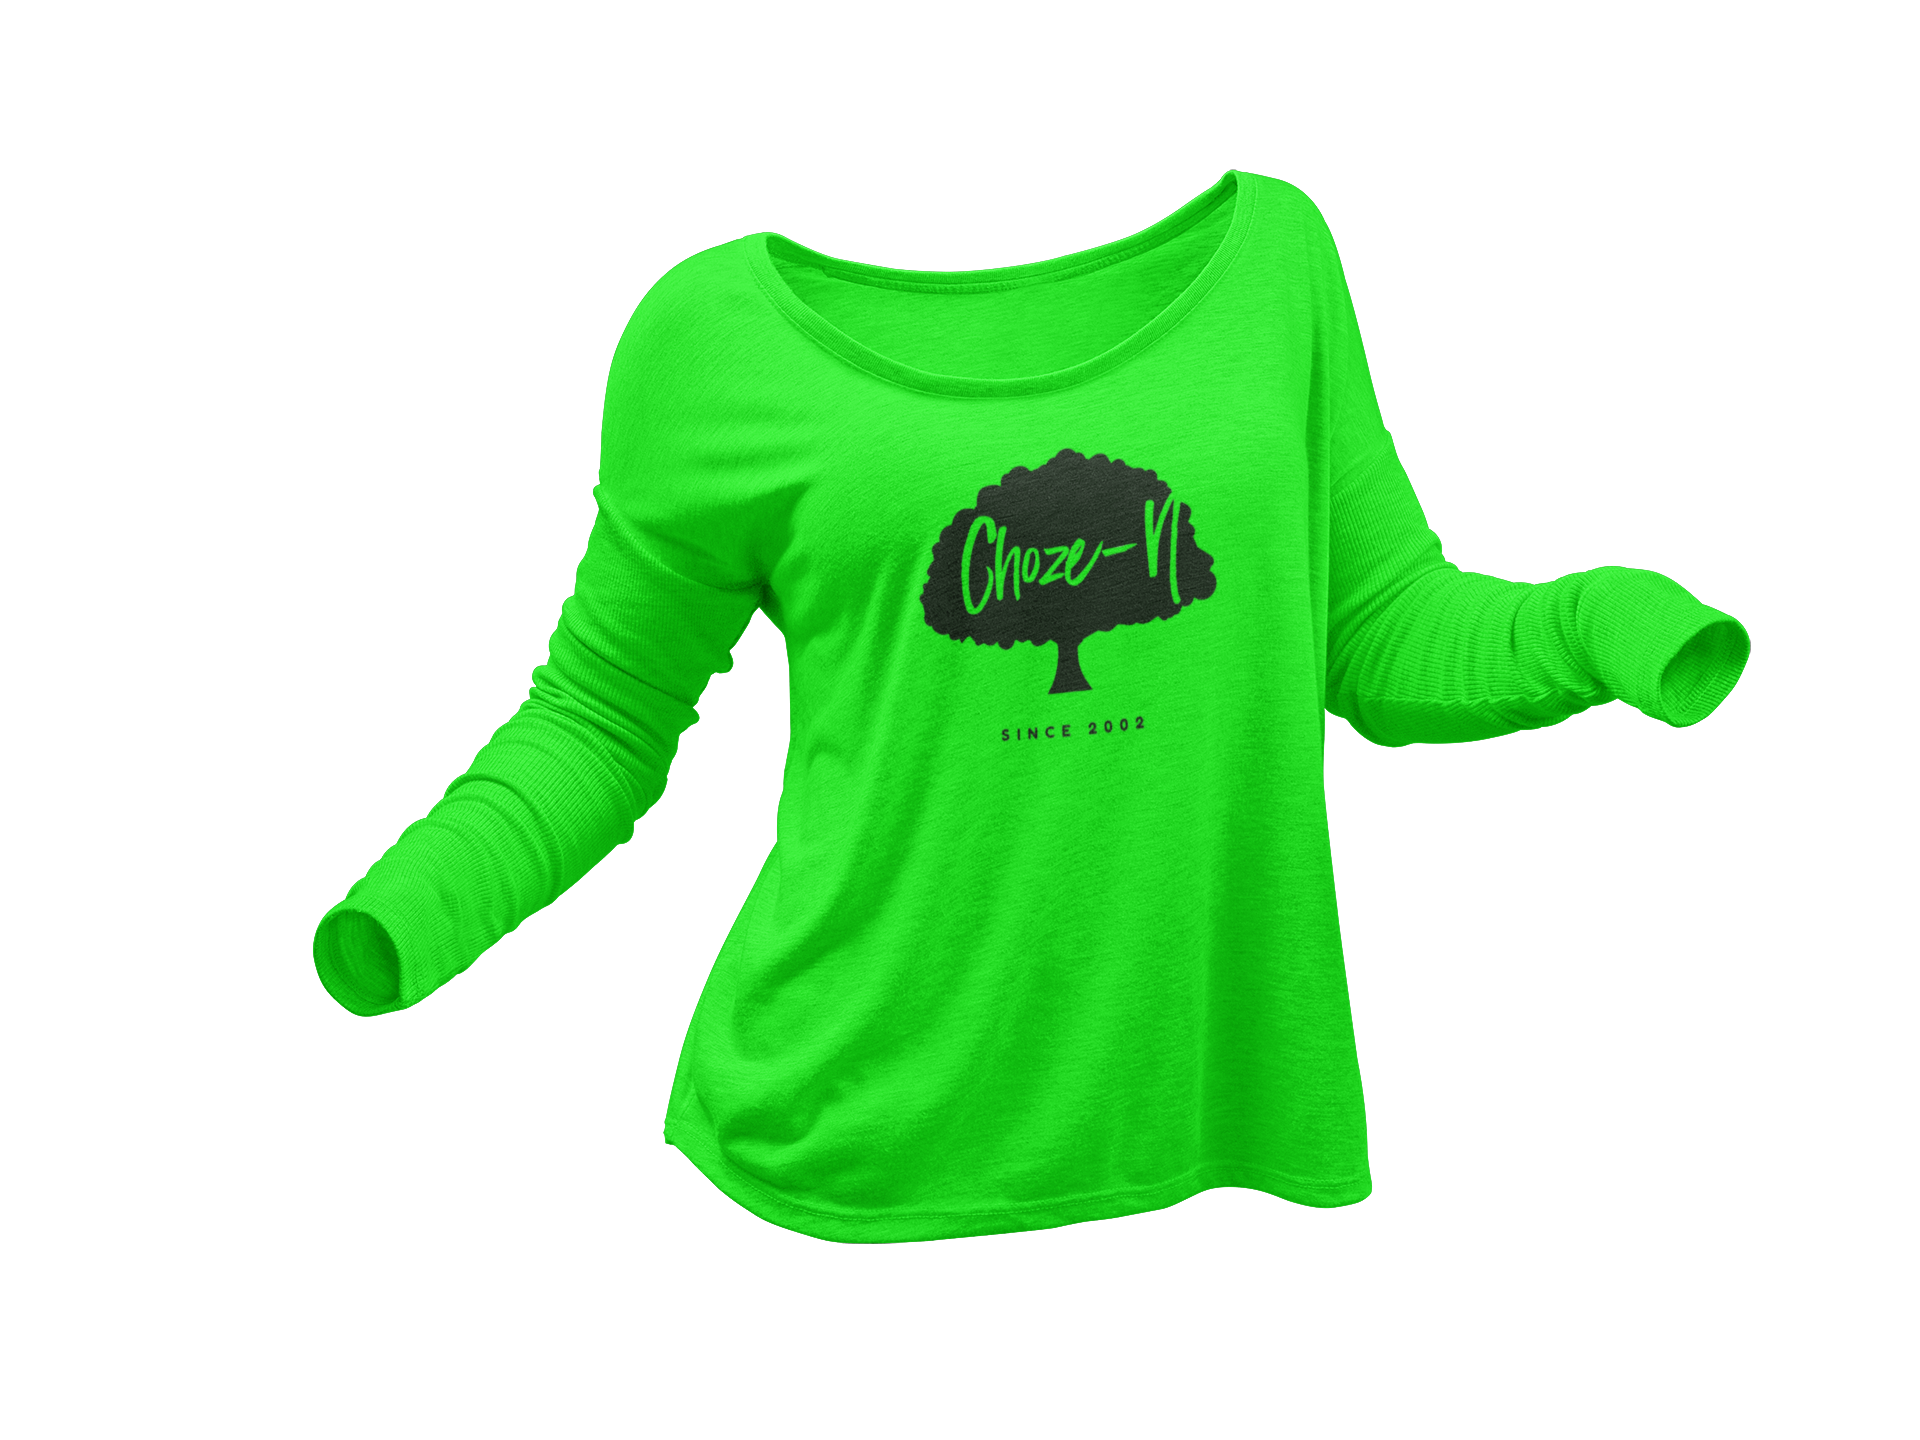 Choze-N Ladies Long Sleeve Black Tree Green Shirt•